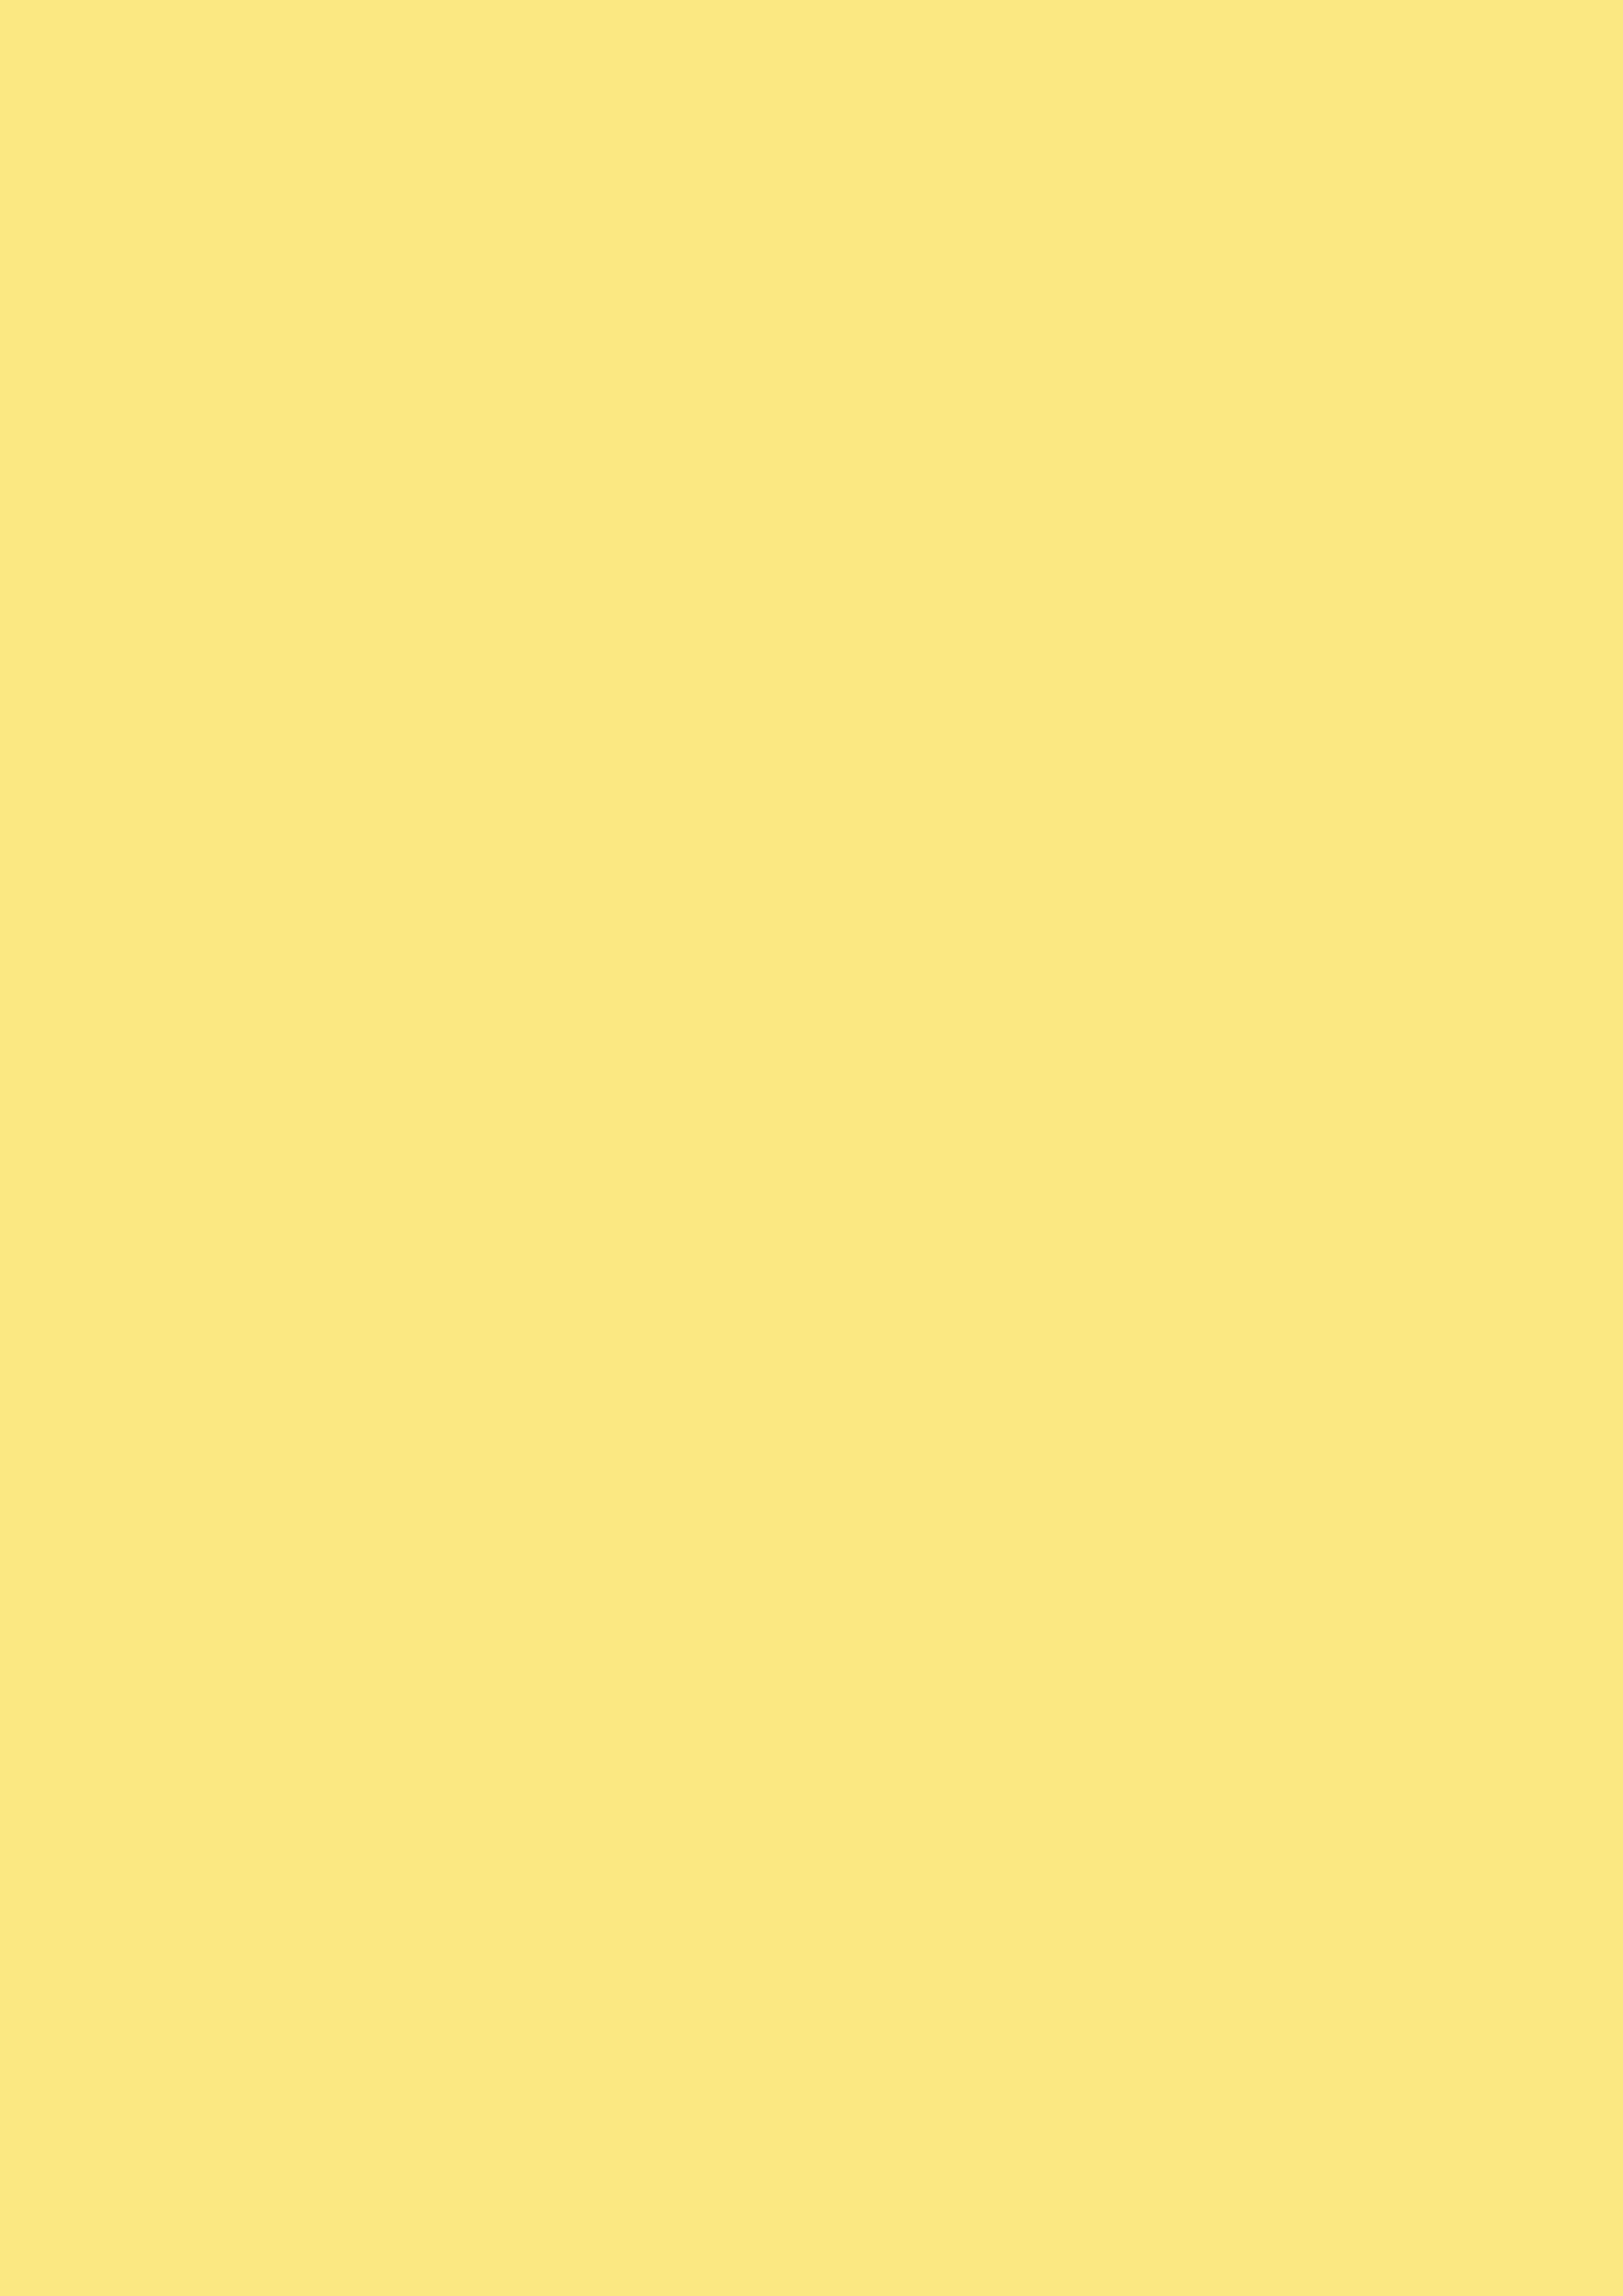 2480x3508 Yellow Crayola Solid Color Background